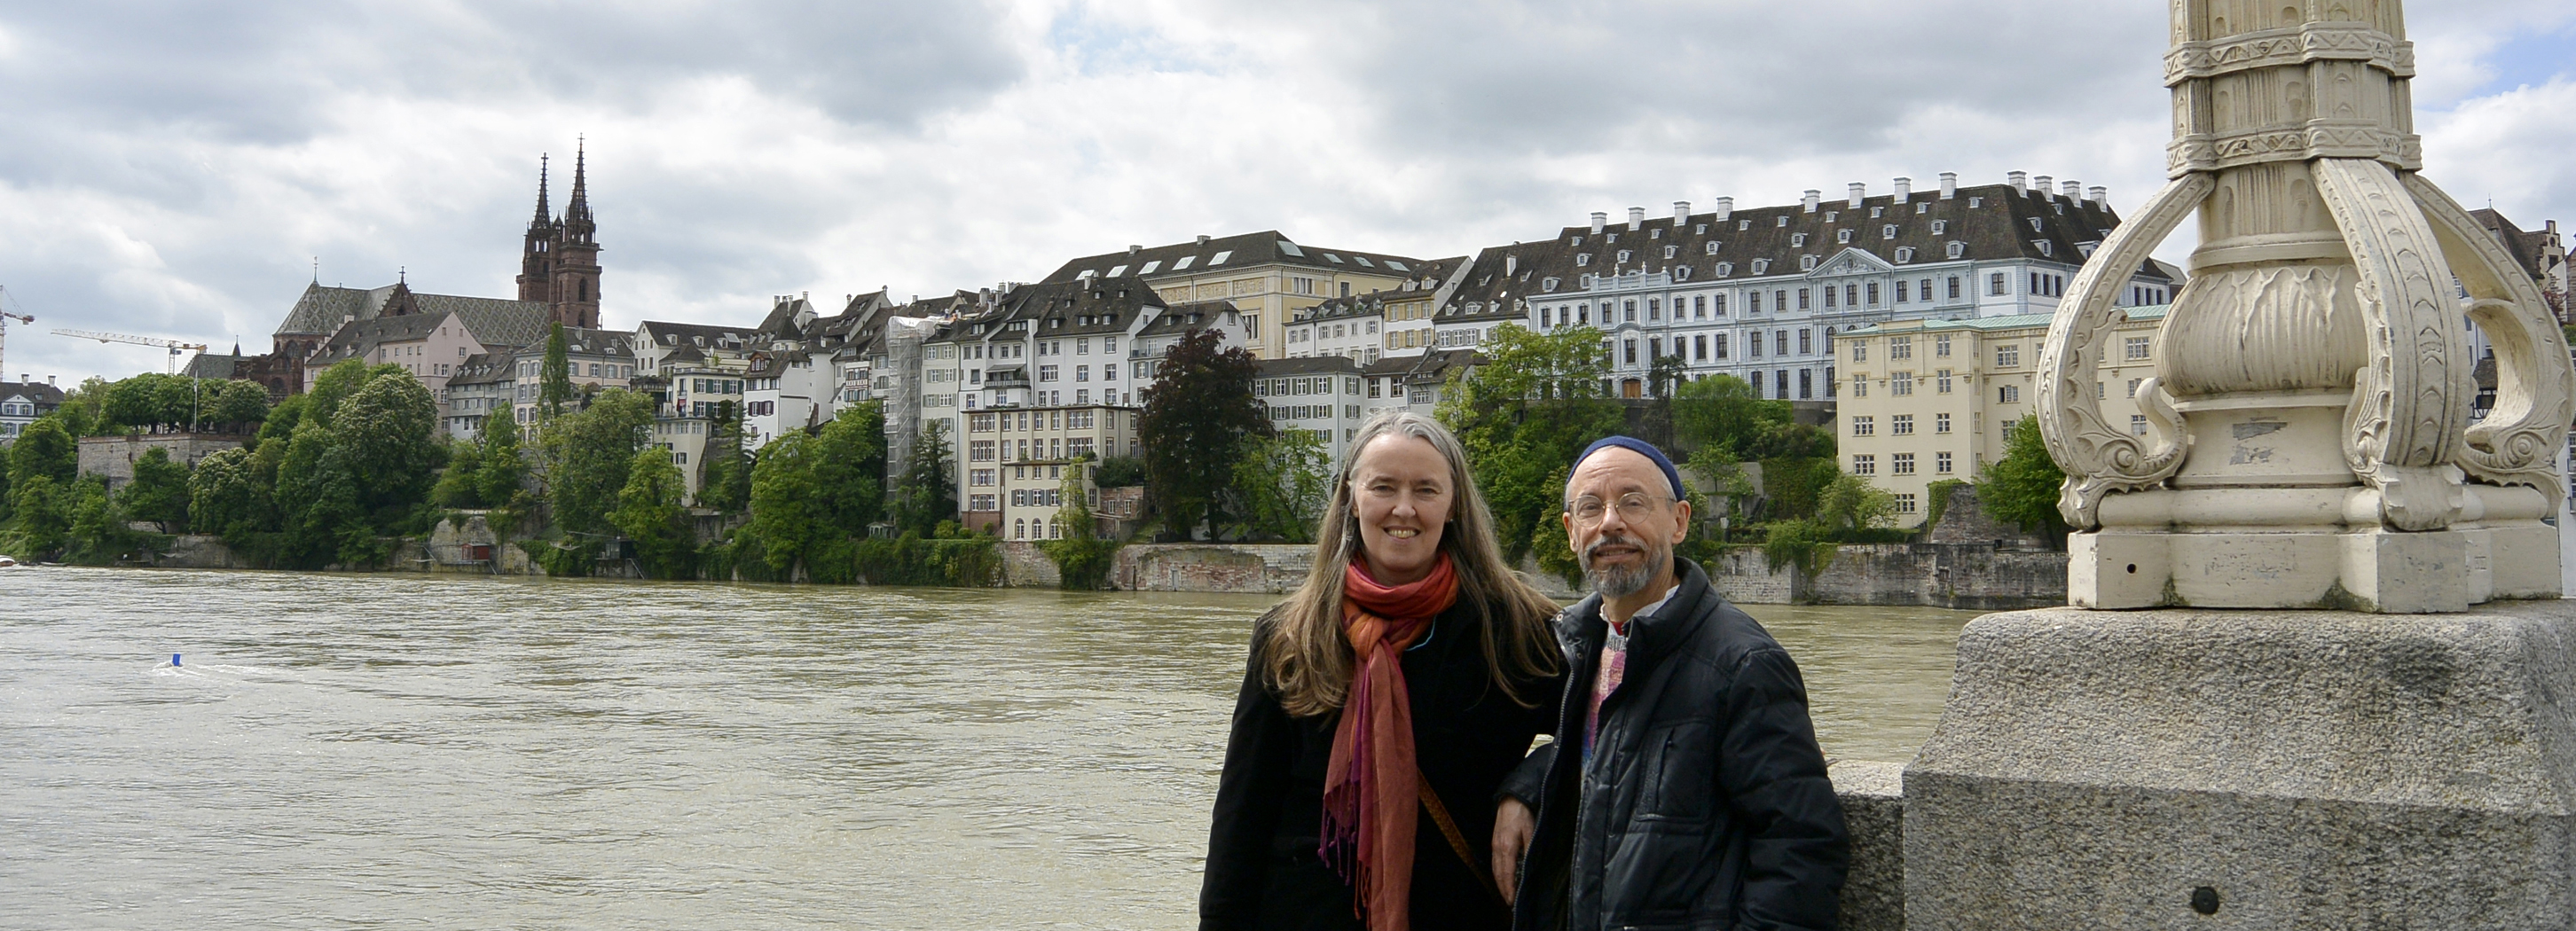 Image of Jutta and Terran standing along the Rhein River in Basel, Switzerland.